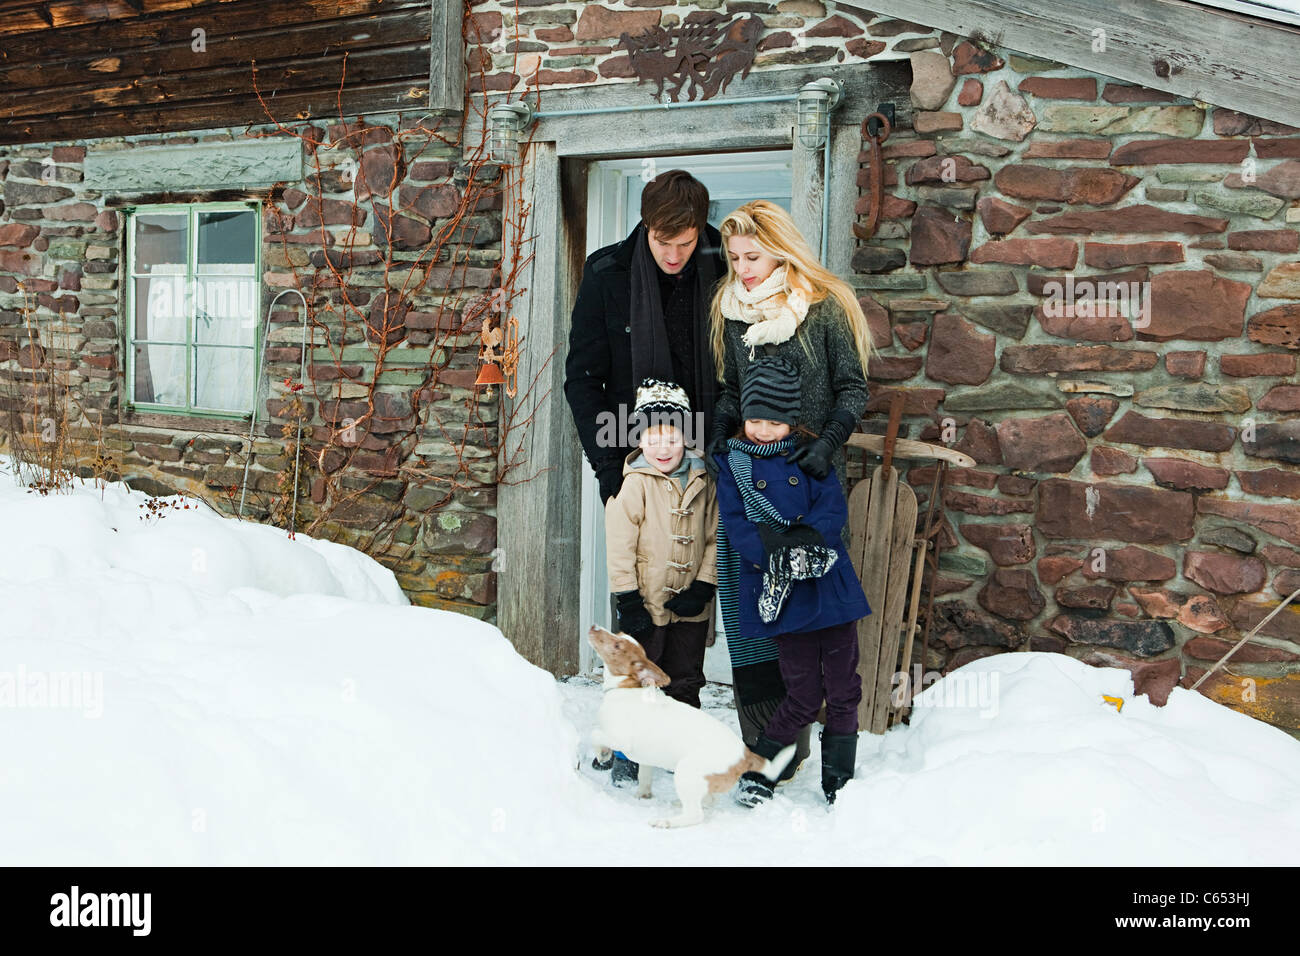 Family outside rustic house in snow - Stock Image